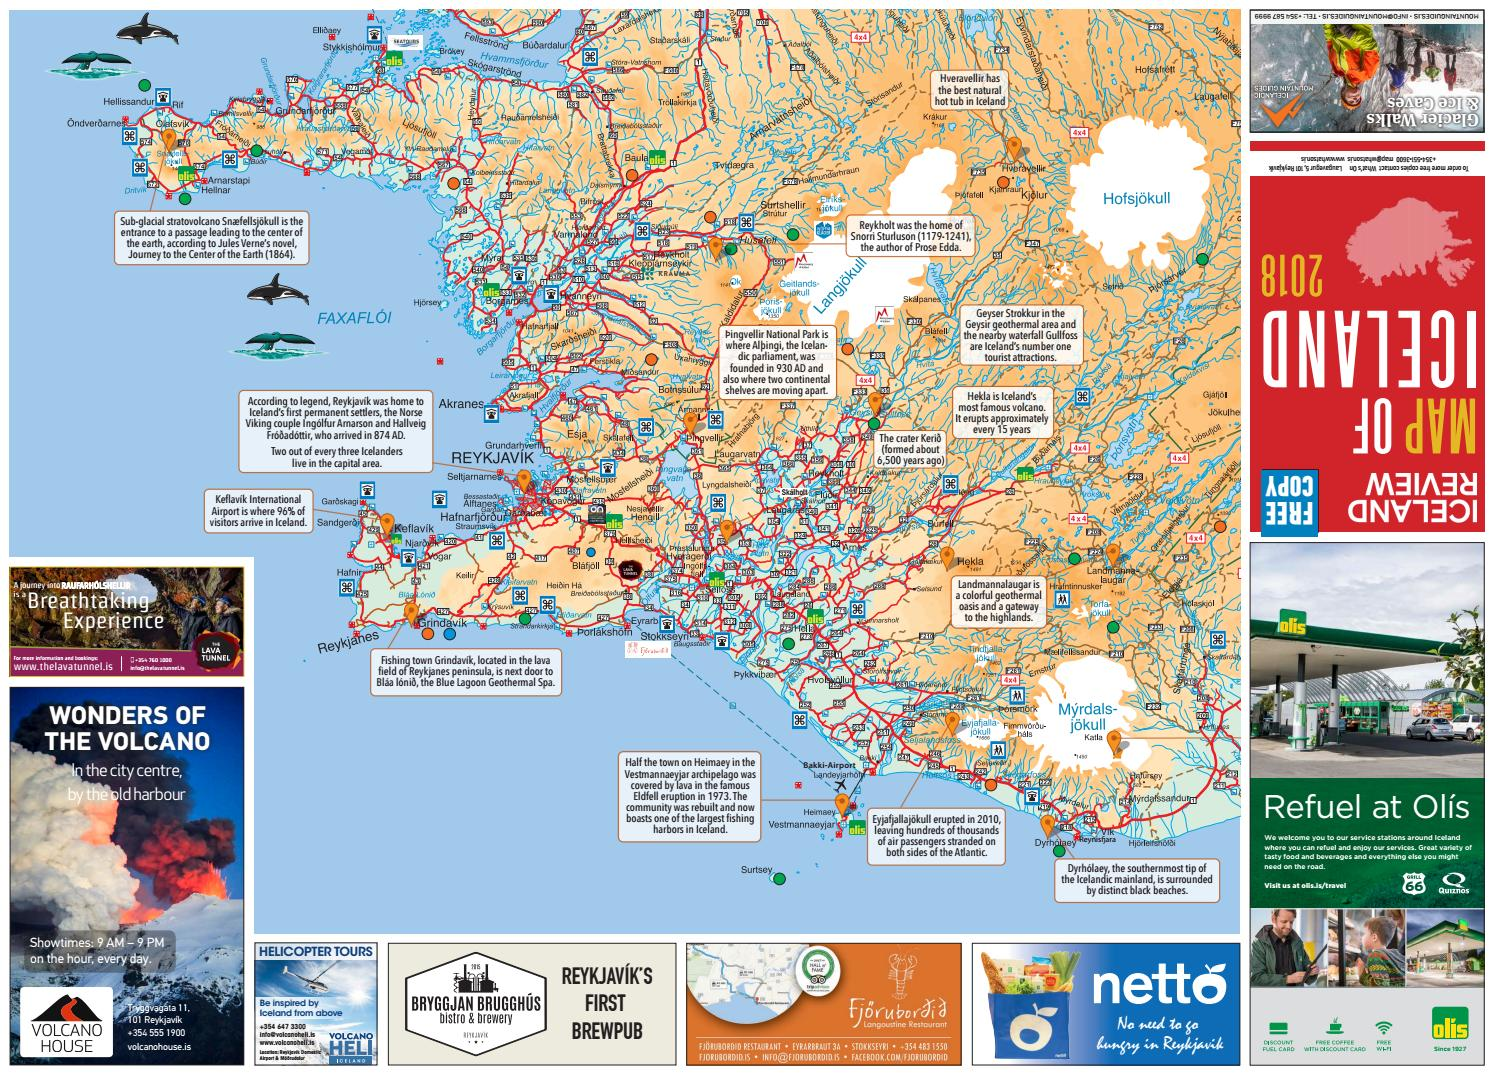 Iceland Review - Map of Iceland 2018 by MD Reykjavik - issuu